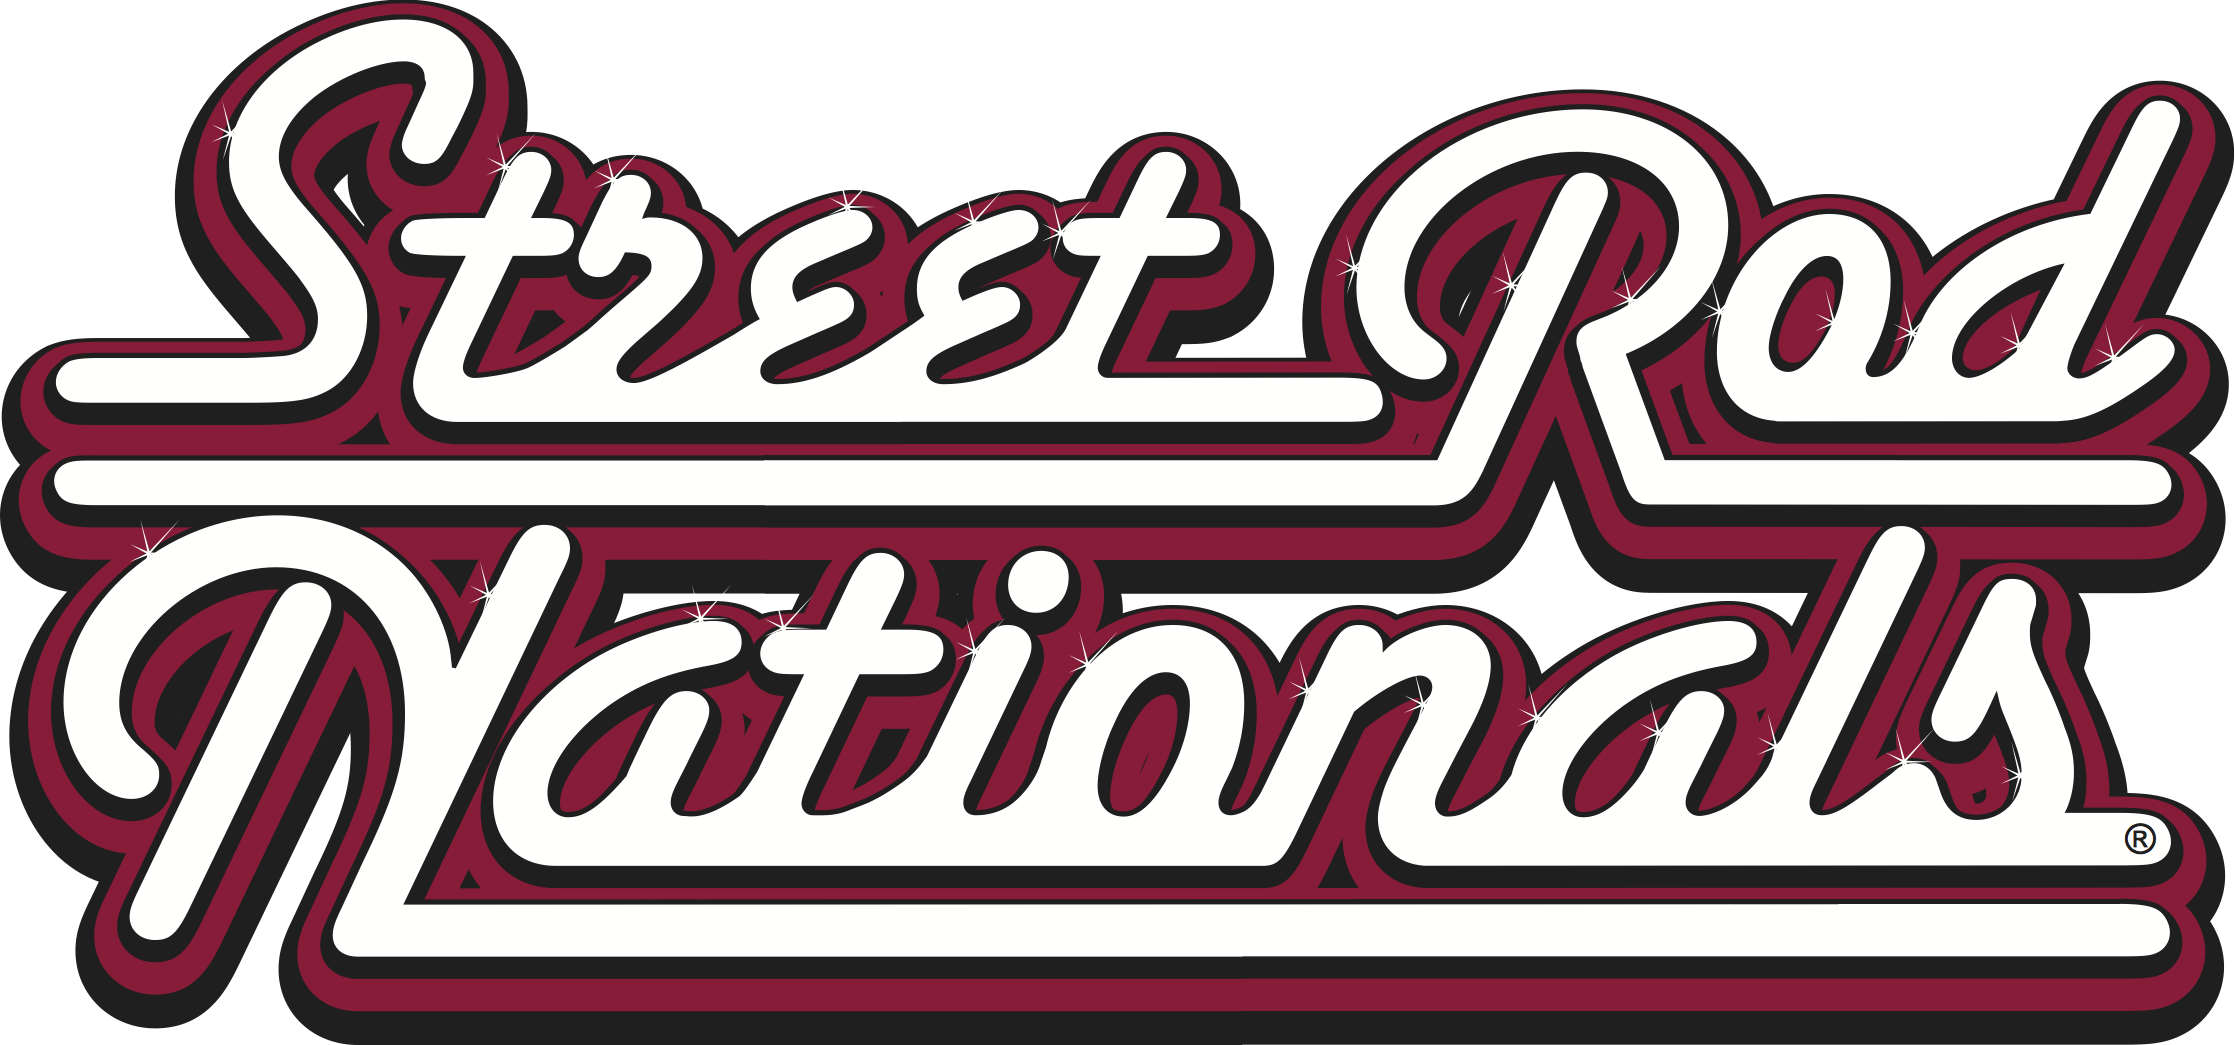 Street Rod Nationals South Comes to Knoxville This Weekend